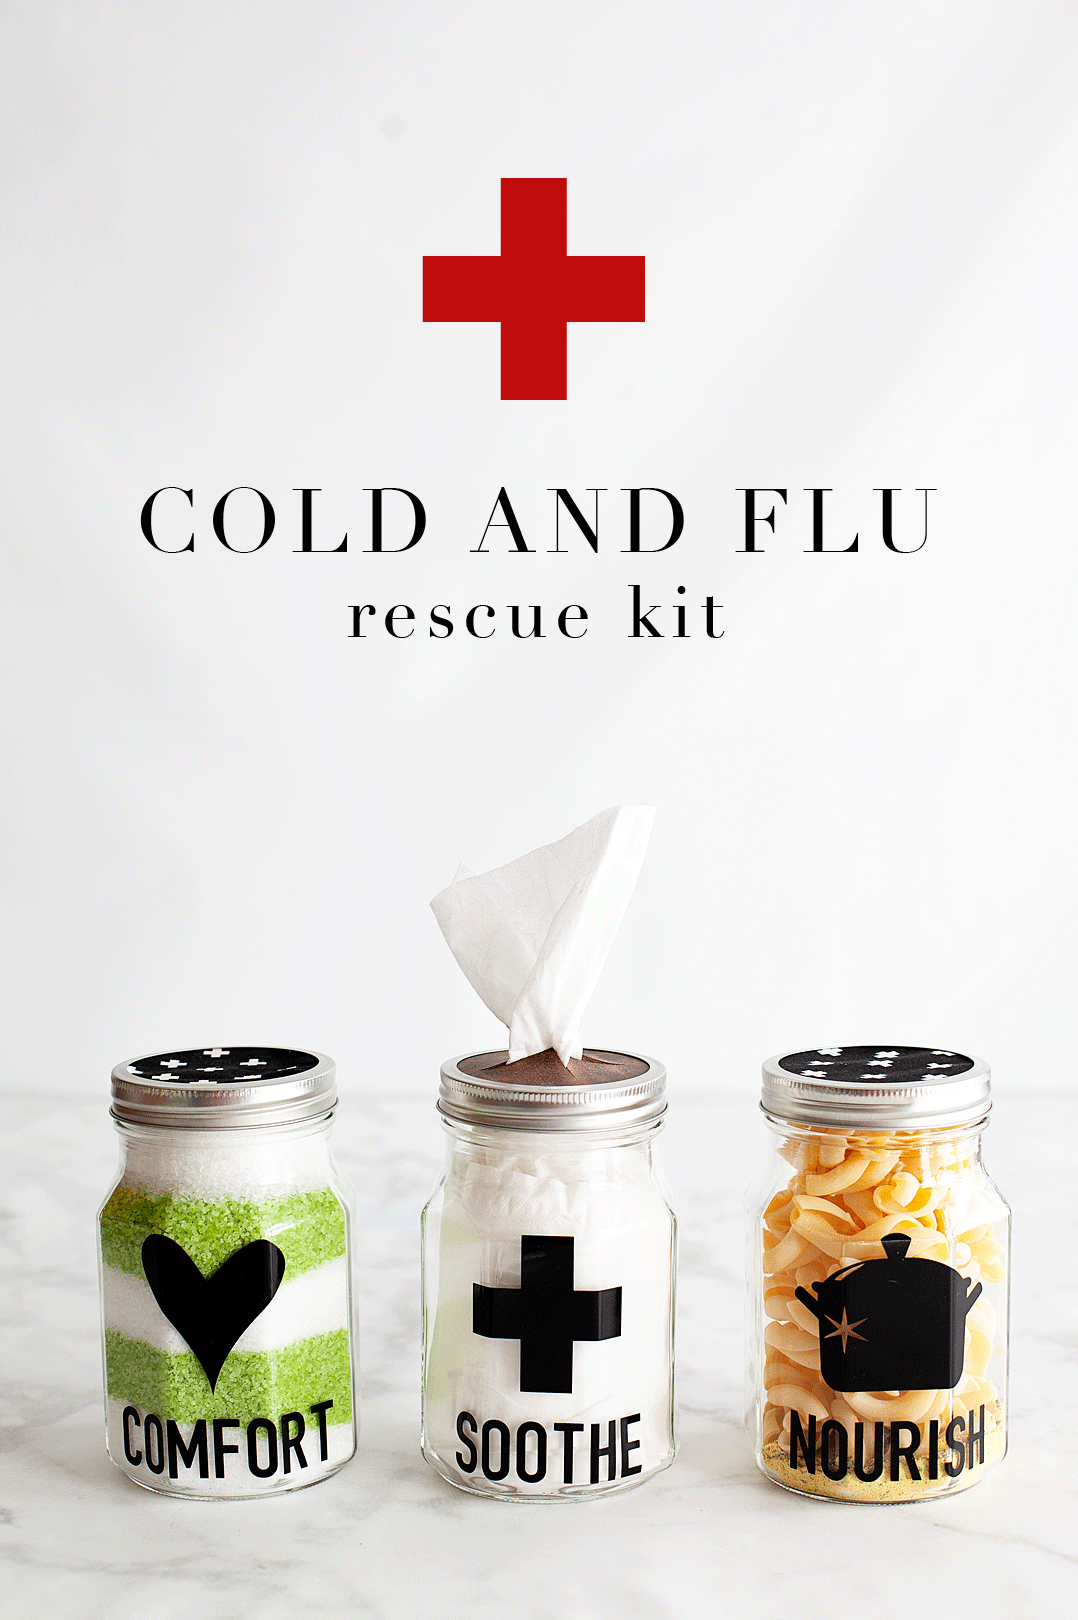 As much as we hate to admit it, cold and flu season is on its way. There is nothing more miserable than one of those lousy winter colds. What's almost just as bad is watching someone you care for dealing with a cold or, Heaven forbid, the flu! I'm always looking for ways to help cheer them up and let them know that we love them and hope for their better health. That's when I came up with this idea for a Cold and Flu Rescue Kit to share with those loved ones that are suffering.• WhipperBerry